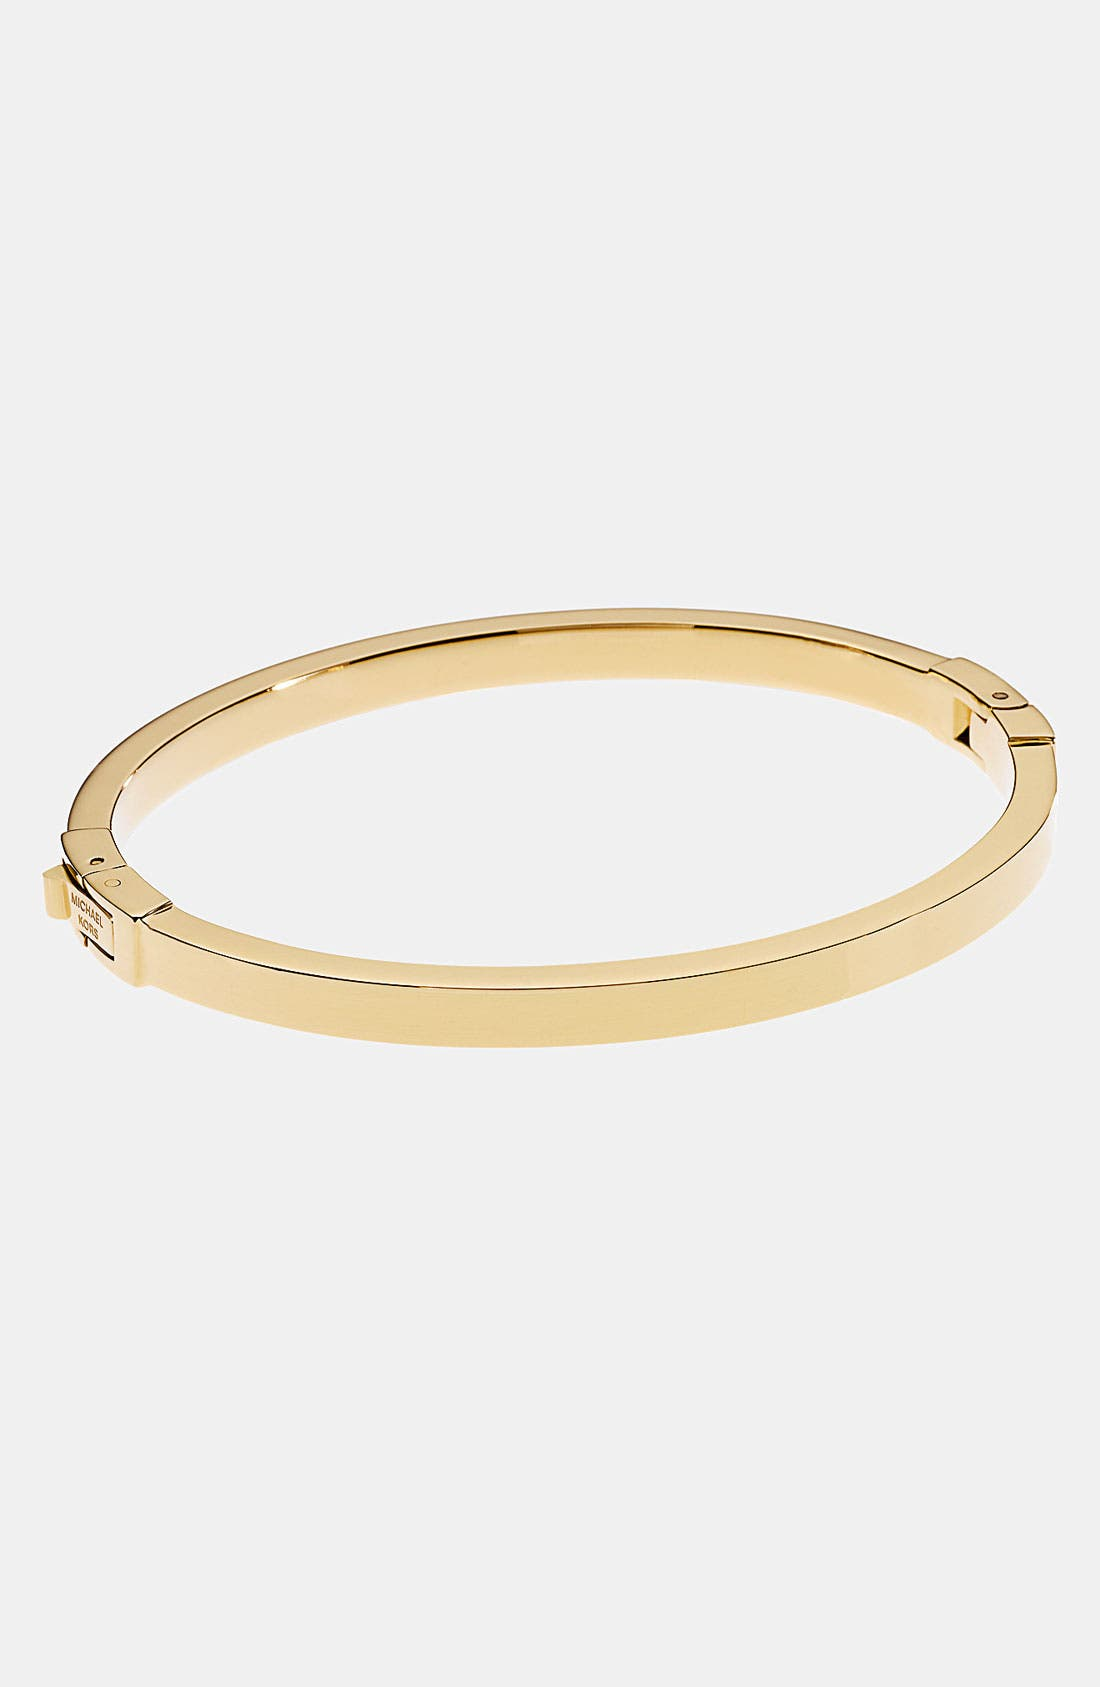 Main Image - Michael Kors Skinny Stackable Bangle